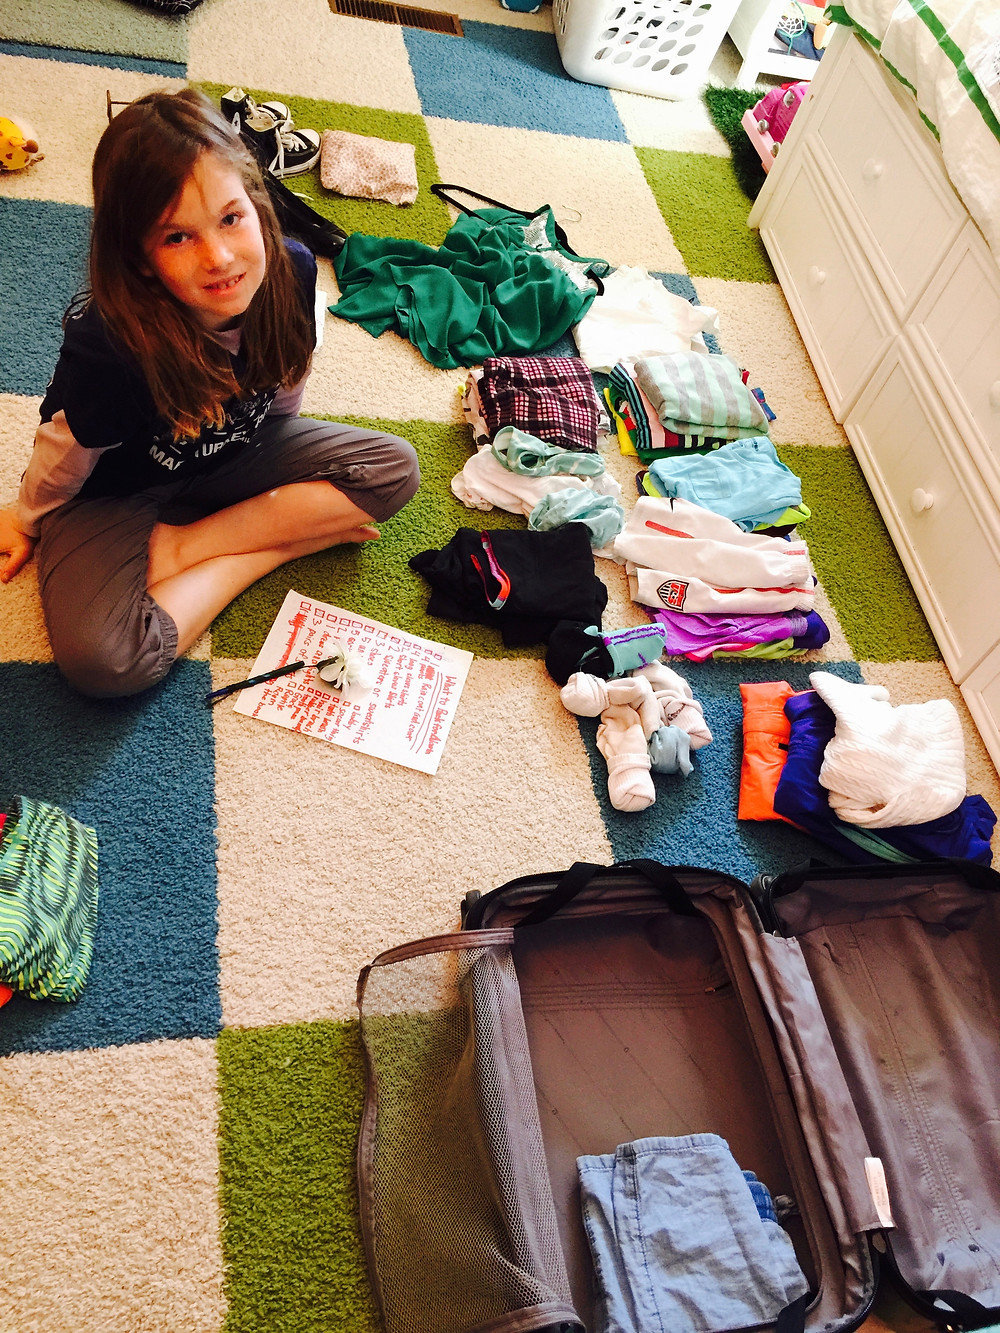 Kids CAN Pack for Themselves! - Child Packing Clothes with List